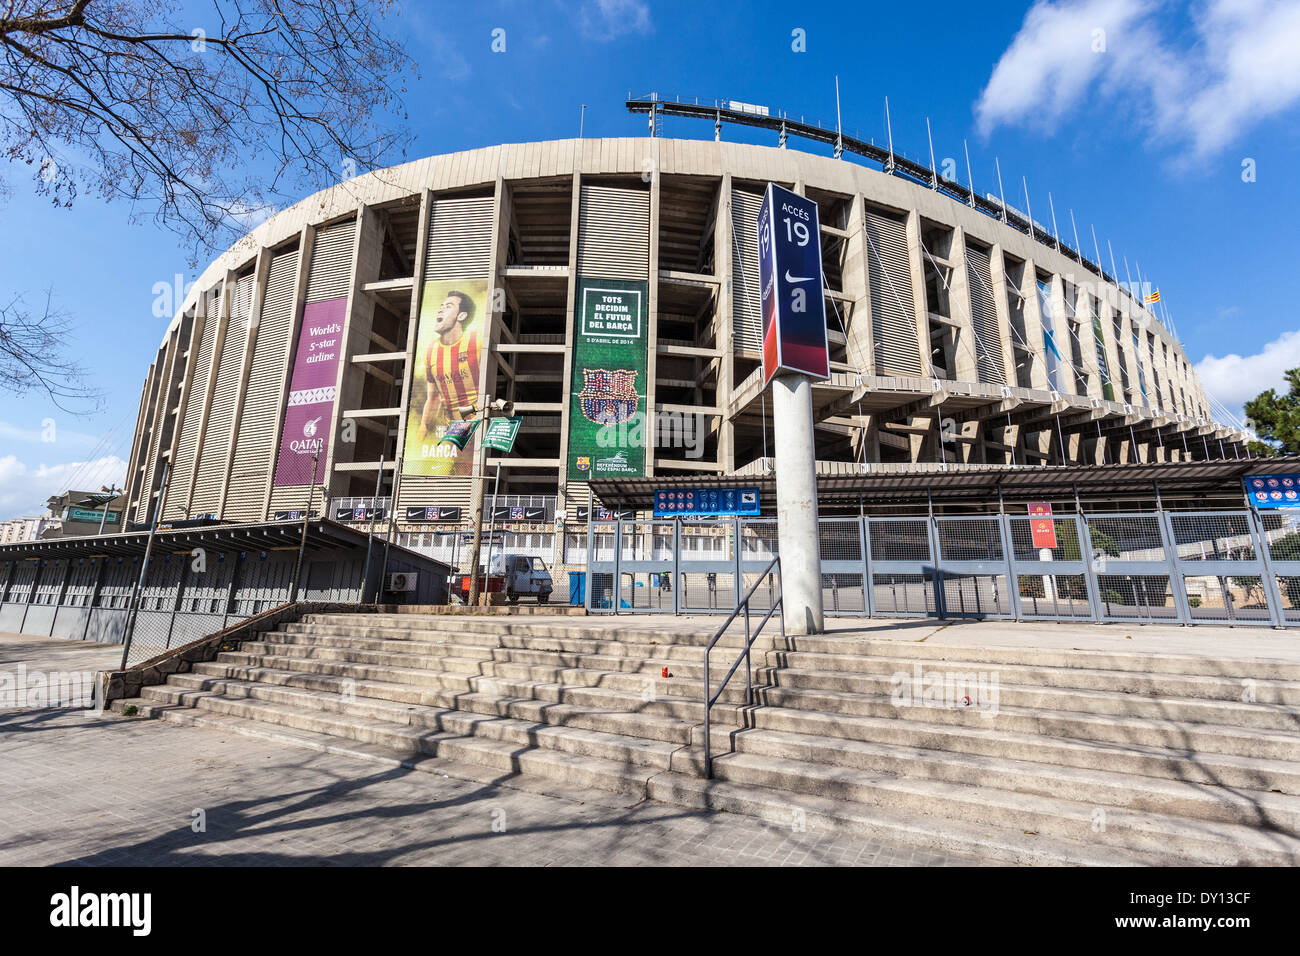 Barcelona FC Camp Nou football stadium, Barcelona, Spain. - Stock Image